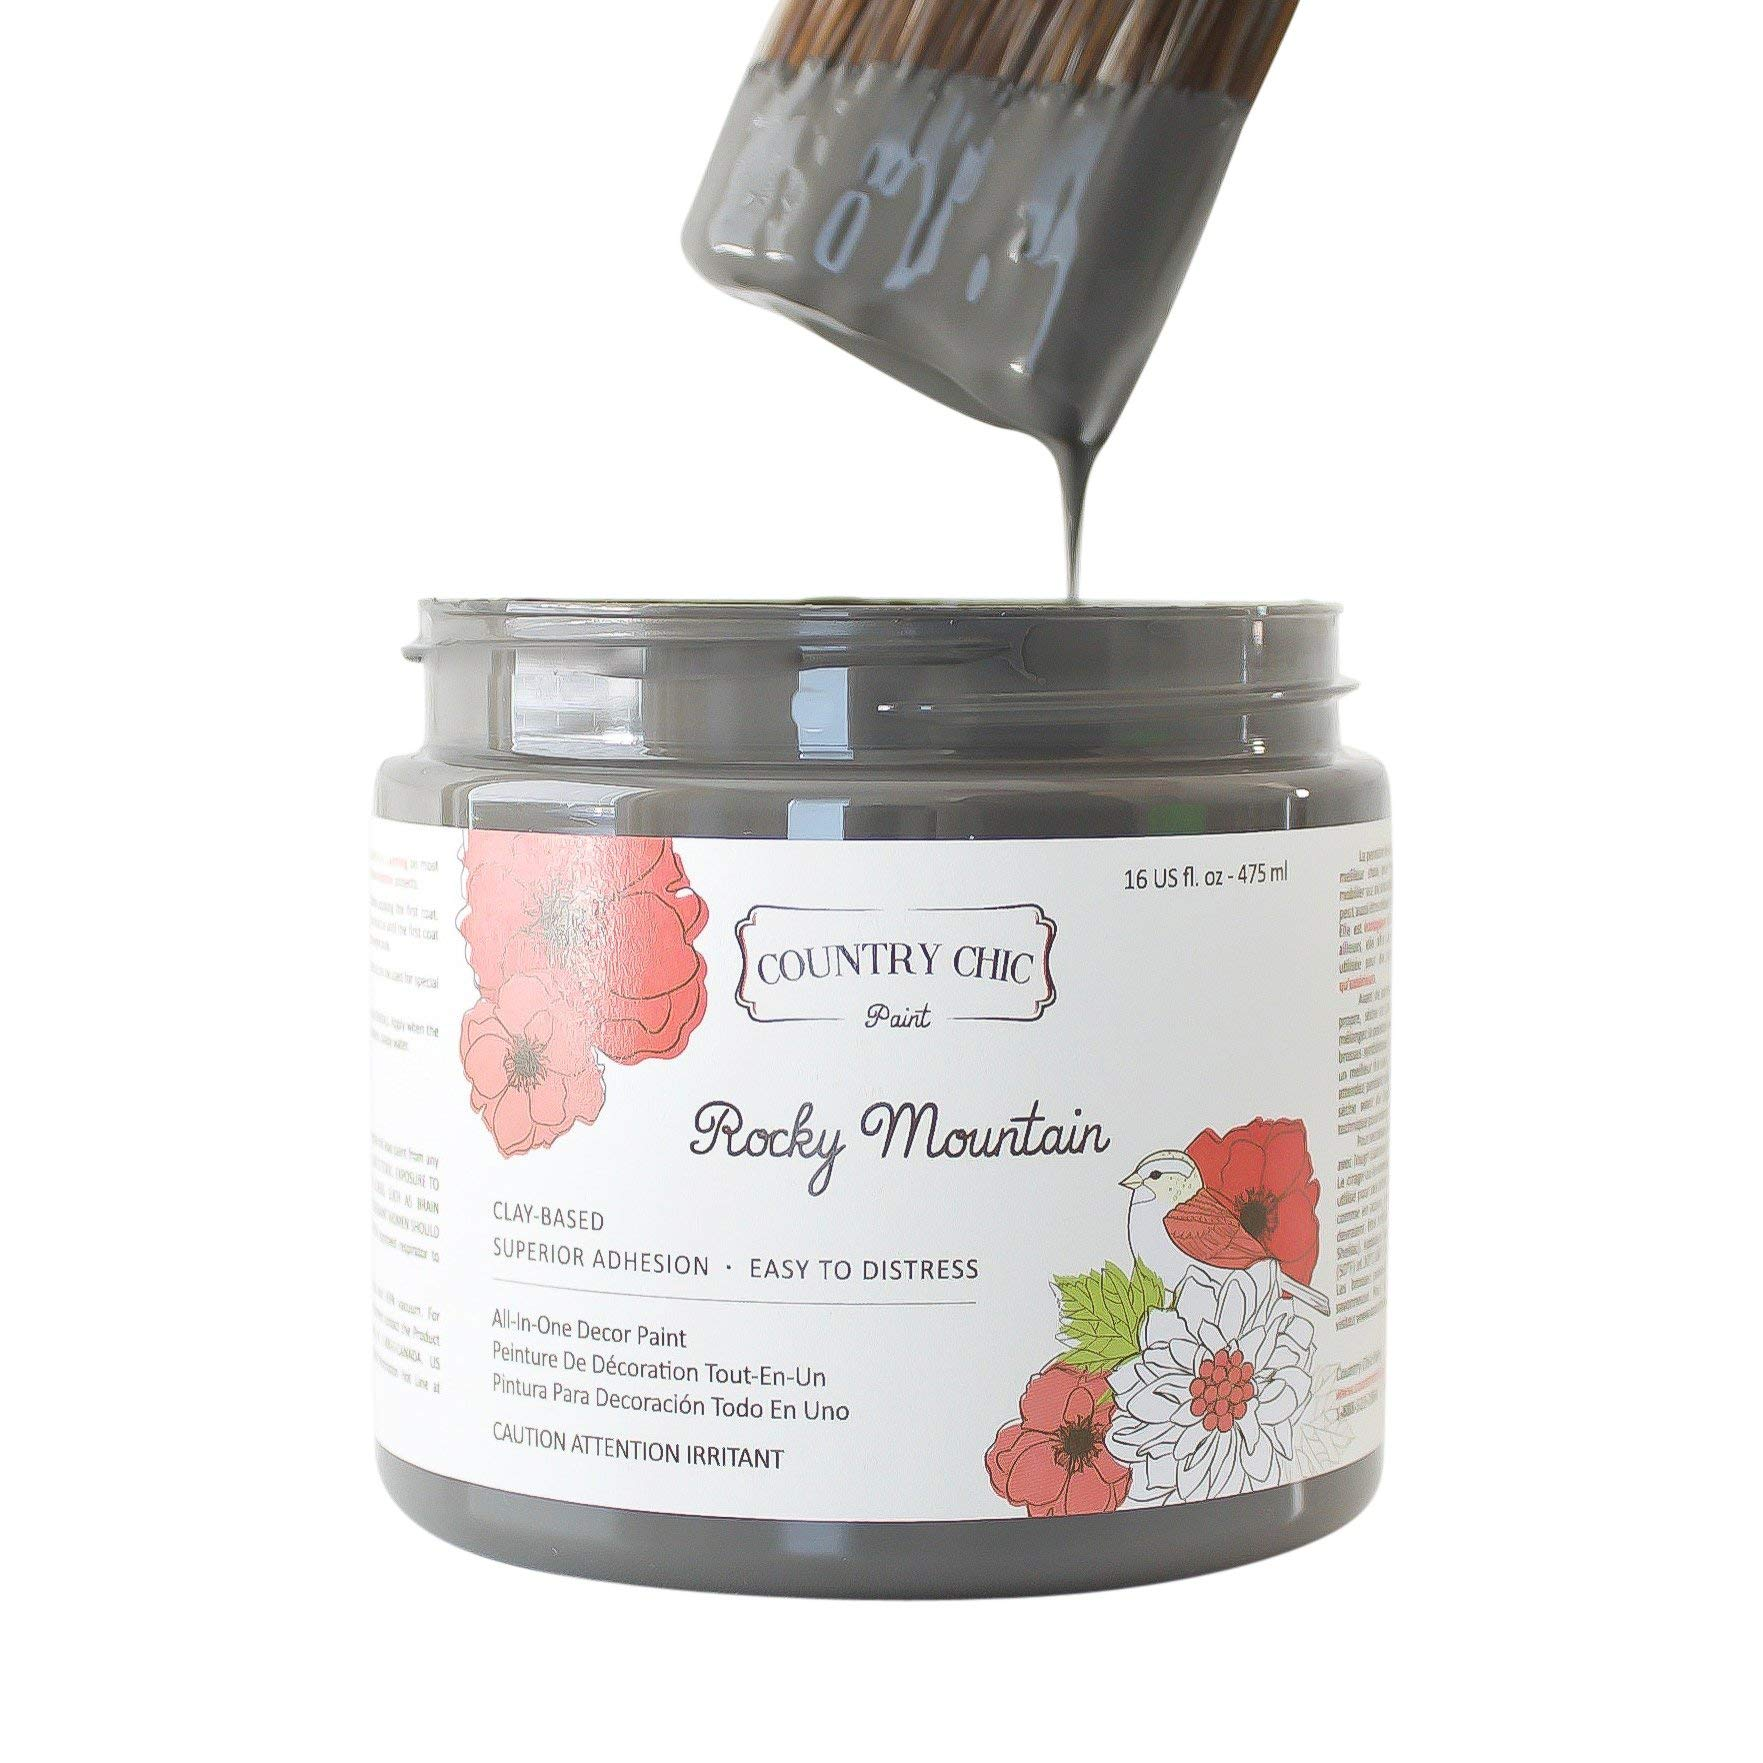 Chalk Style Paint - for Furniture, Home Decor, Crafts - Eco-Friendly - All-in-One - No Wax Needed (Rocky Mountain [Charcoal Grey], Pint (16 oz))